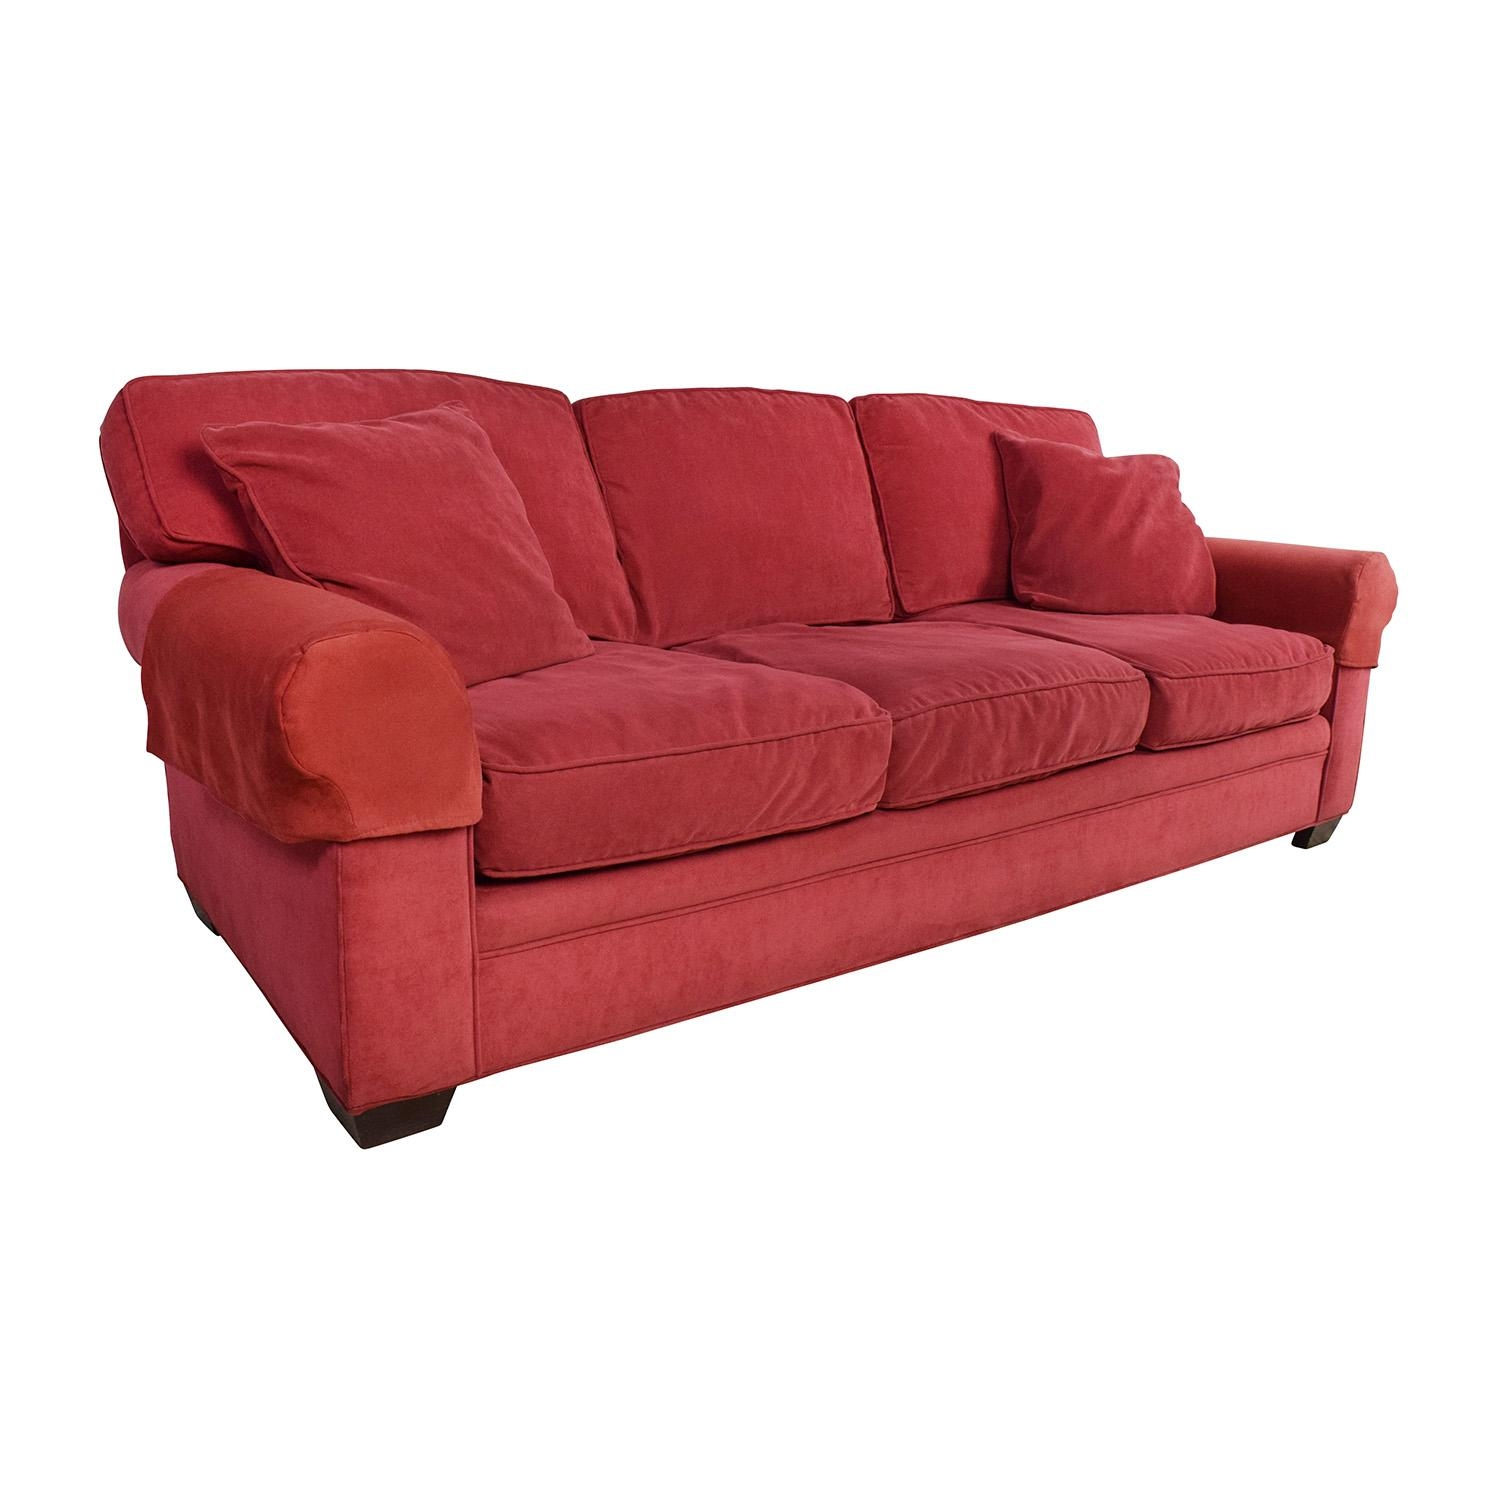 Furniture: Red Sofa Sleeper | Burgundy Couch | Burgundy Leather Chairs Regarding Red Sofa Chairs (Image 9 of 20)